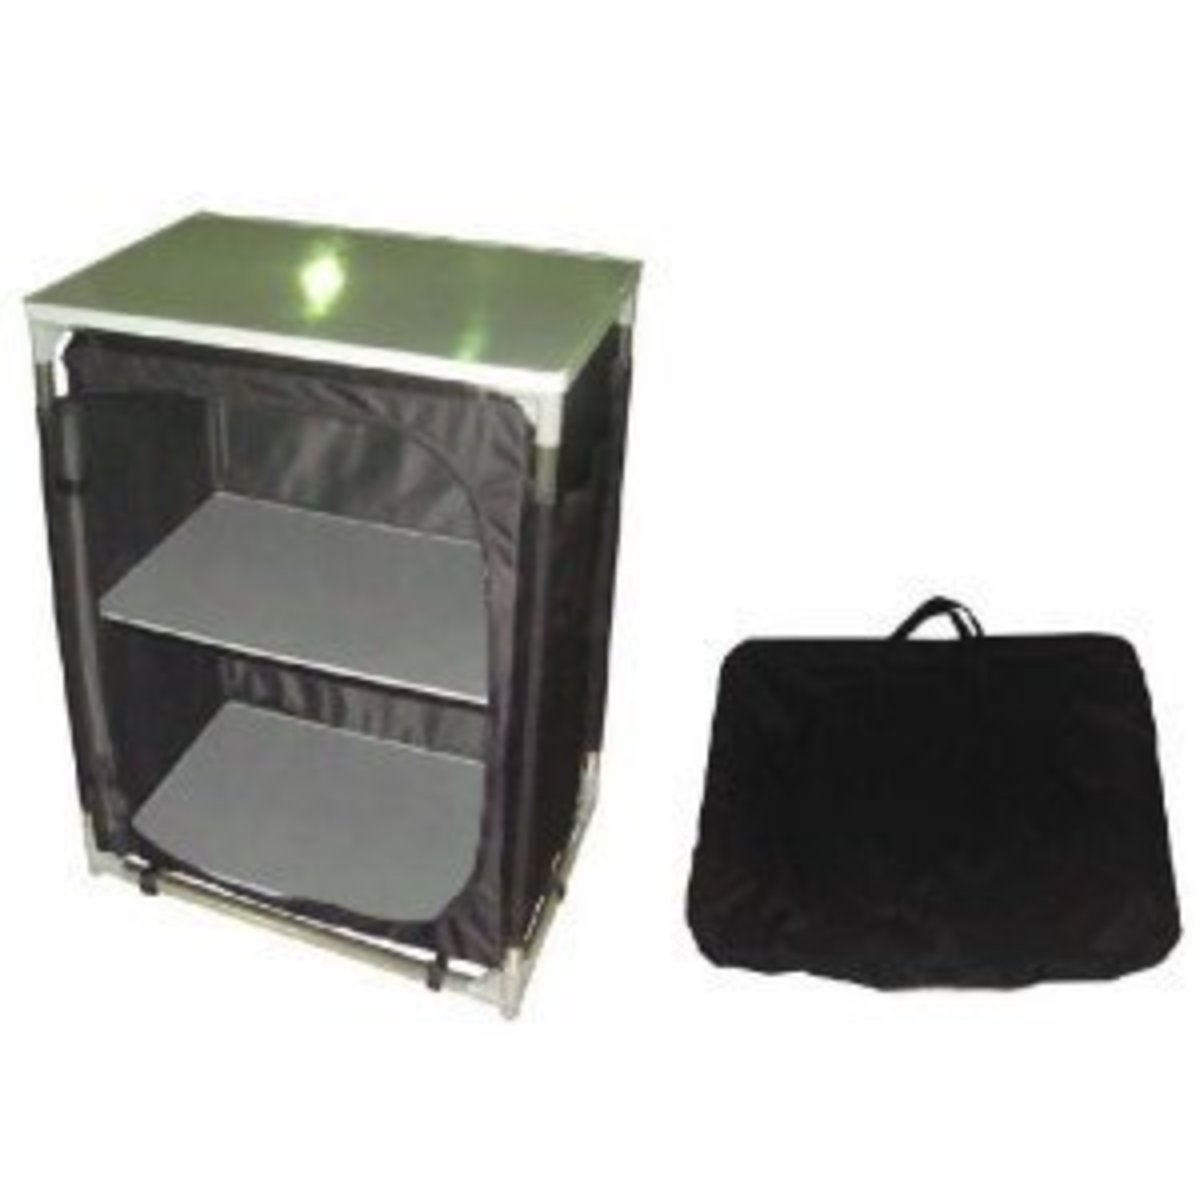 Aluminum 2 Shelf Camping Cupboard/Tabal/Storage/TA-8113 With FREE FOOD COVER